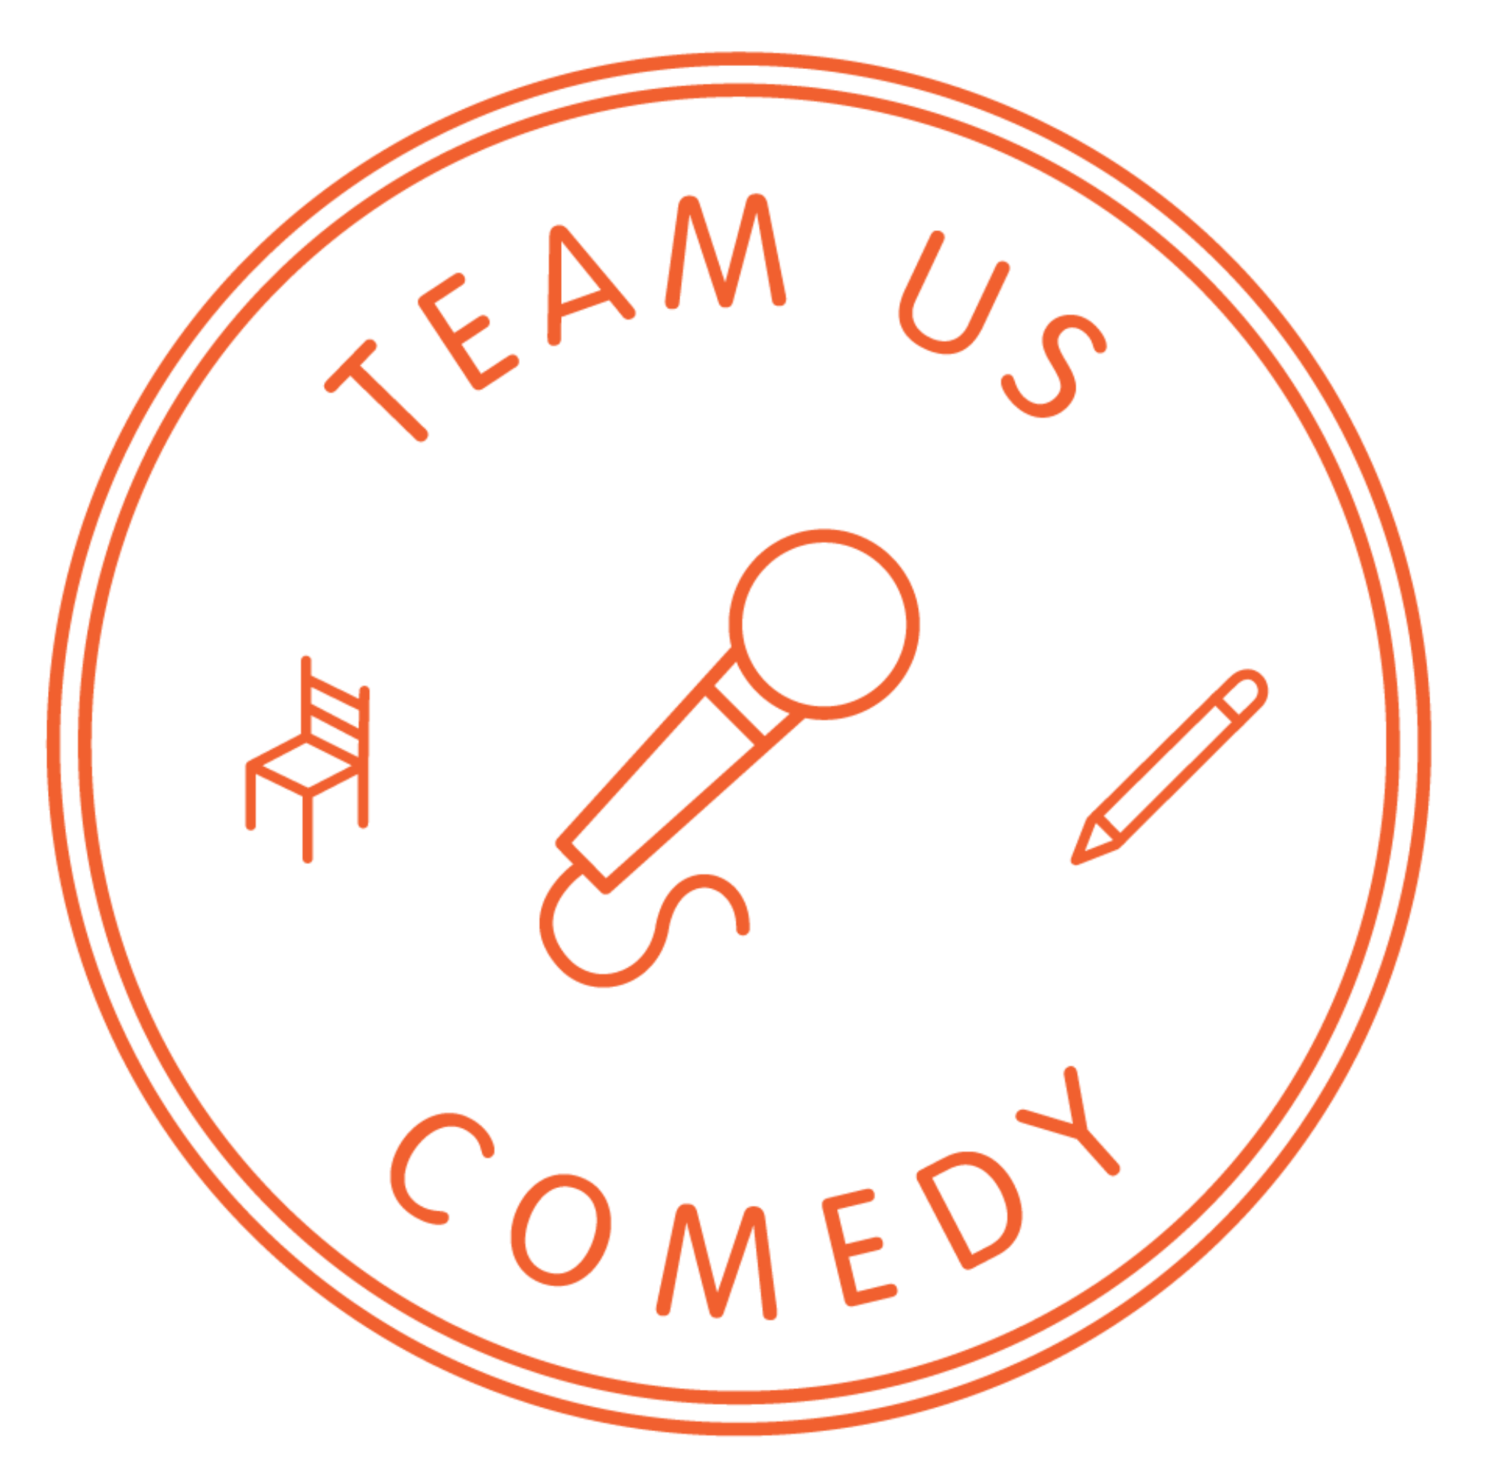 TEAM US COMEDY